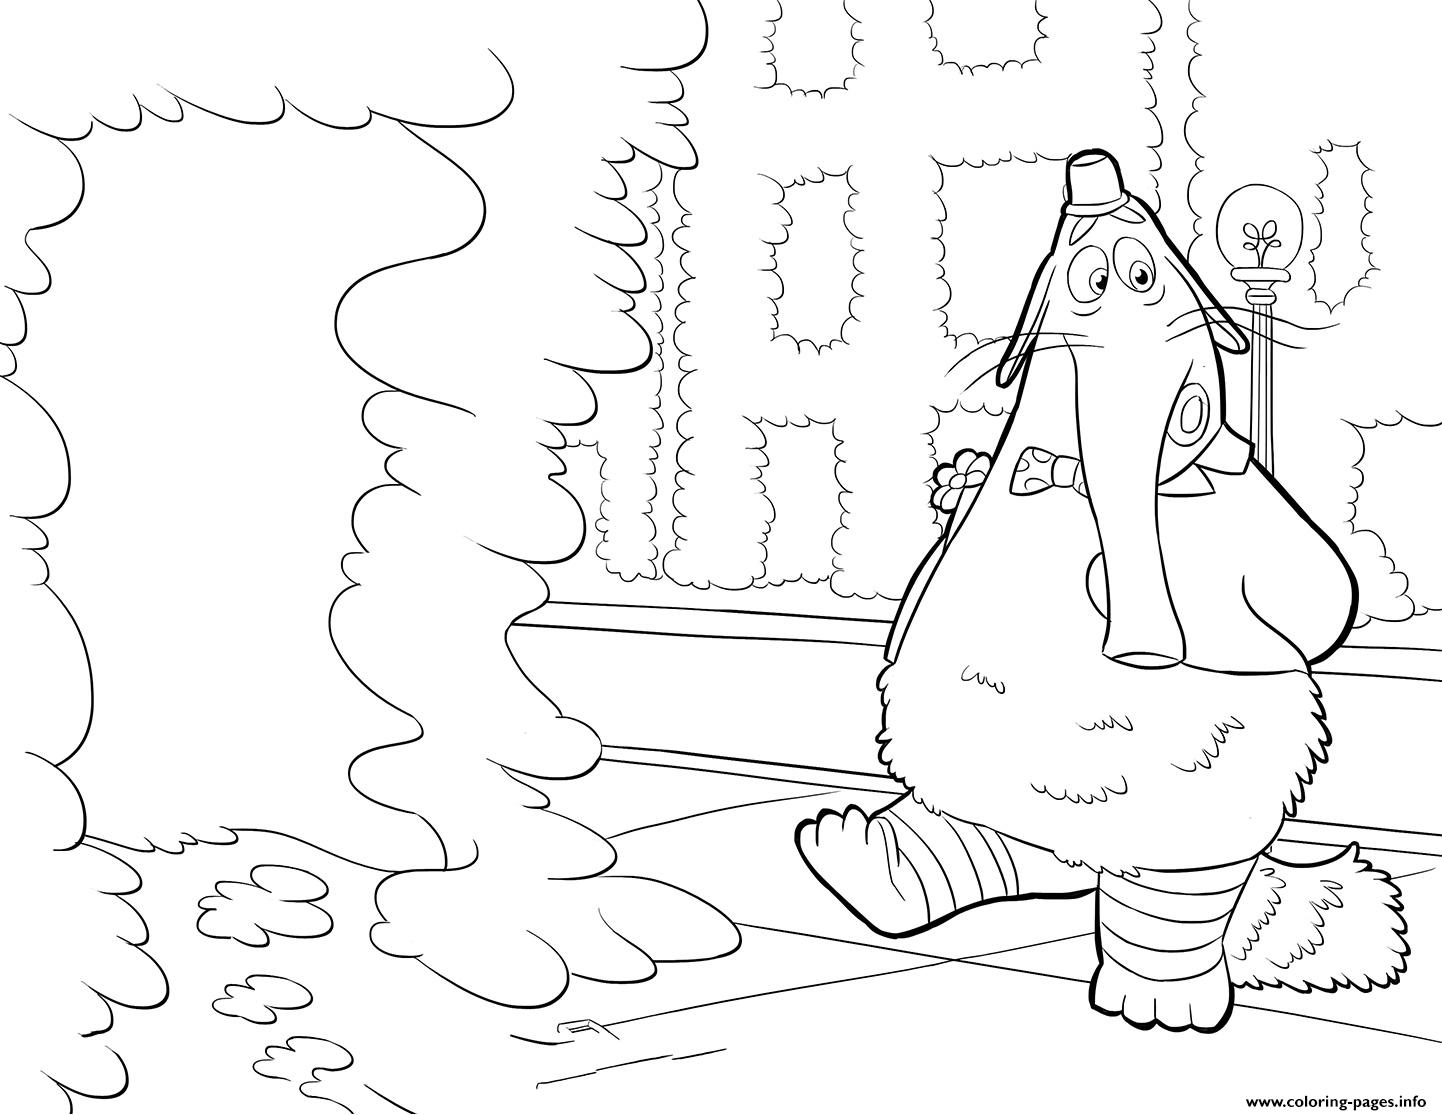 Bing Bong Inside Out Coloring Pages